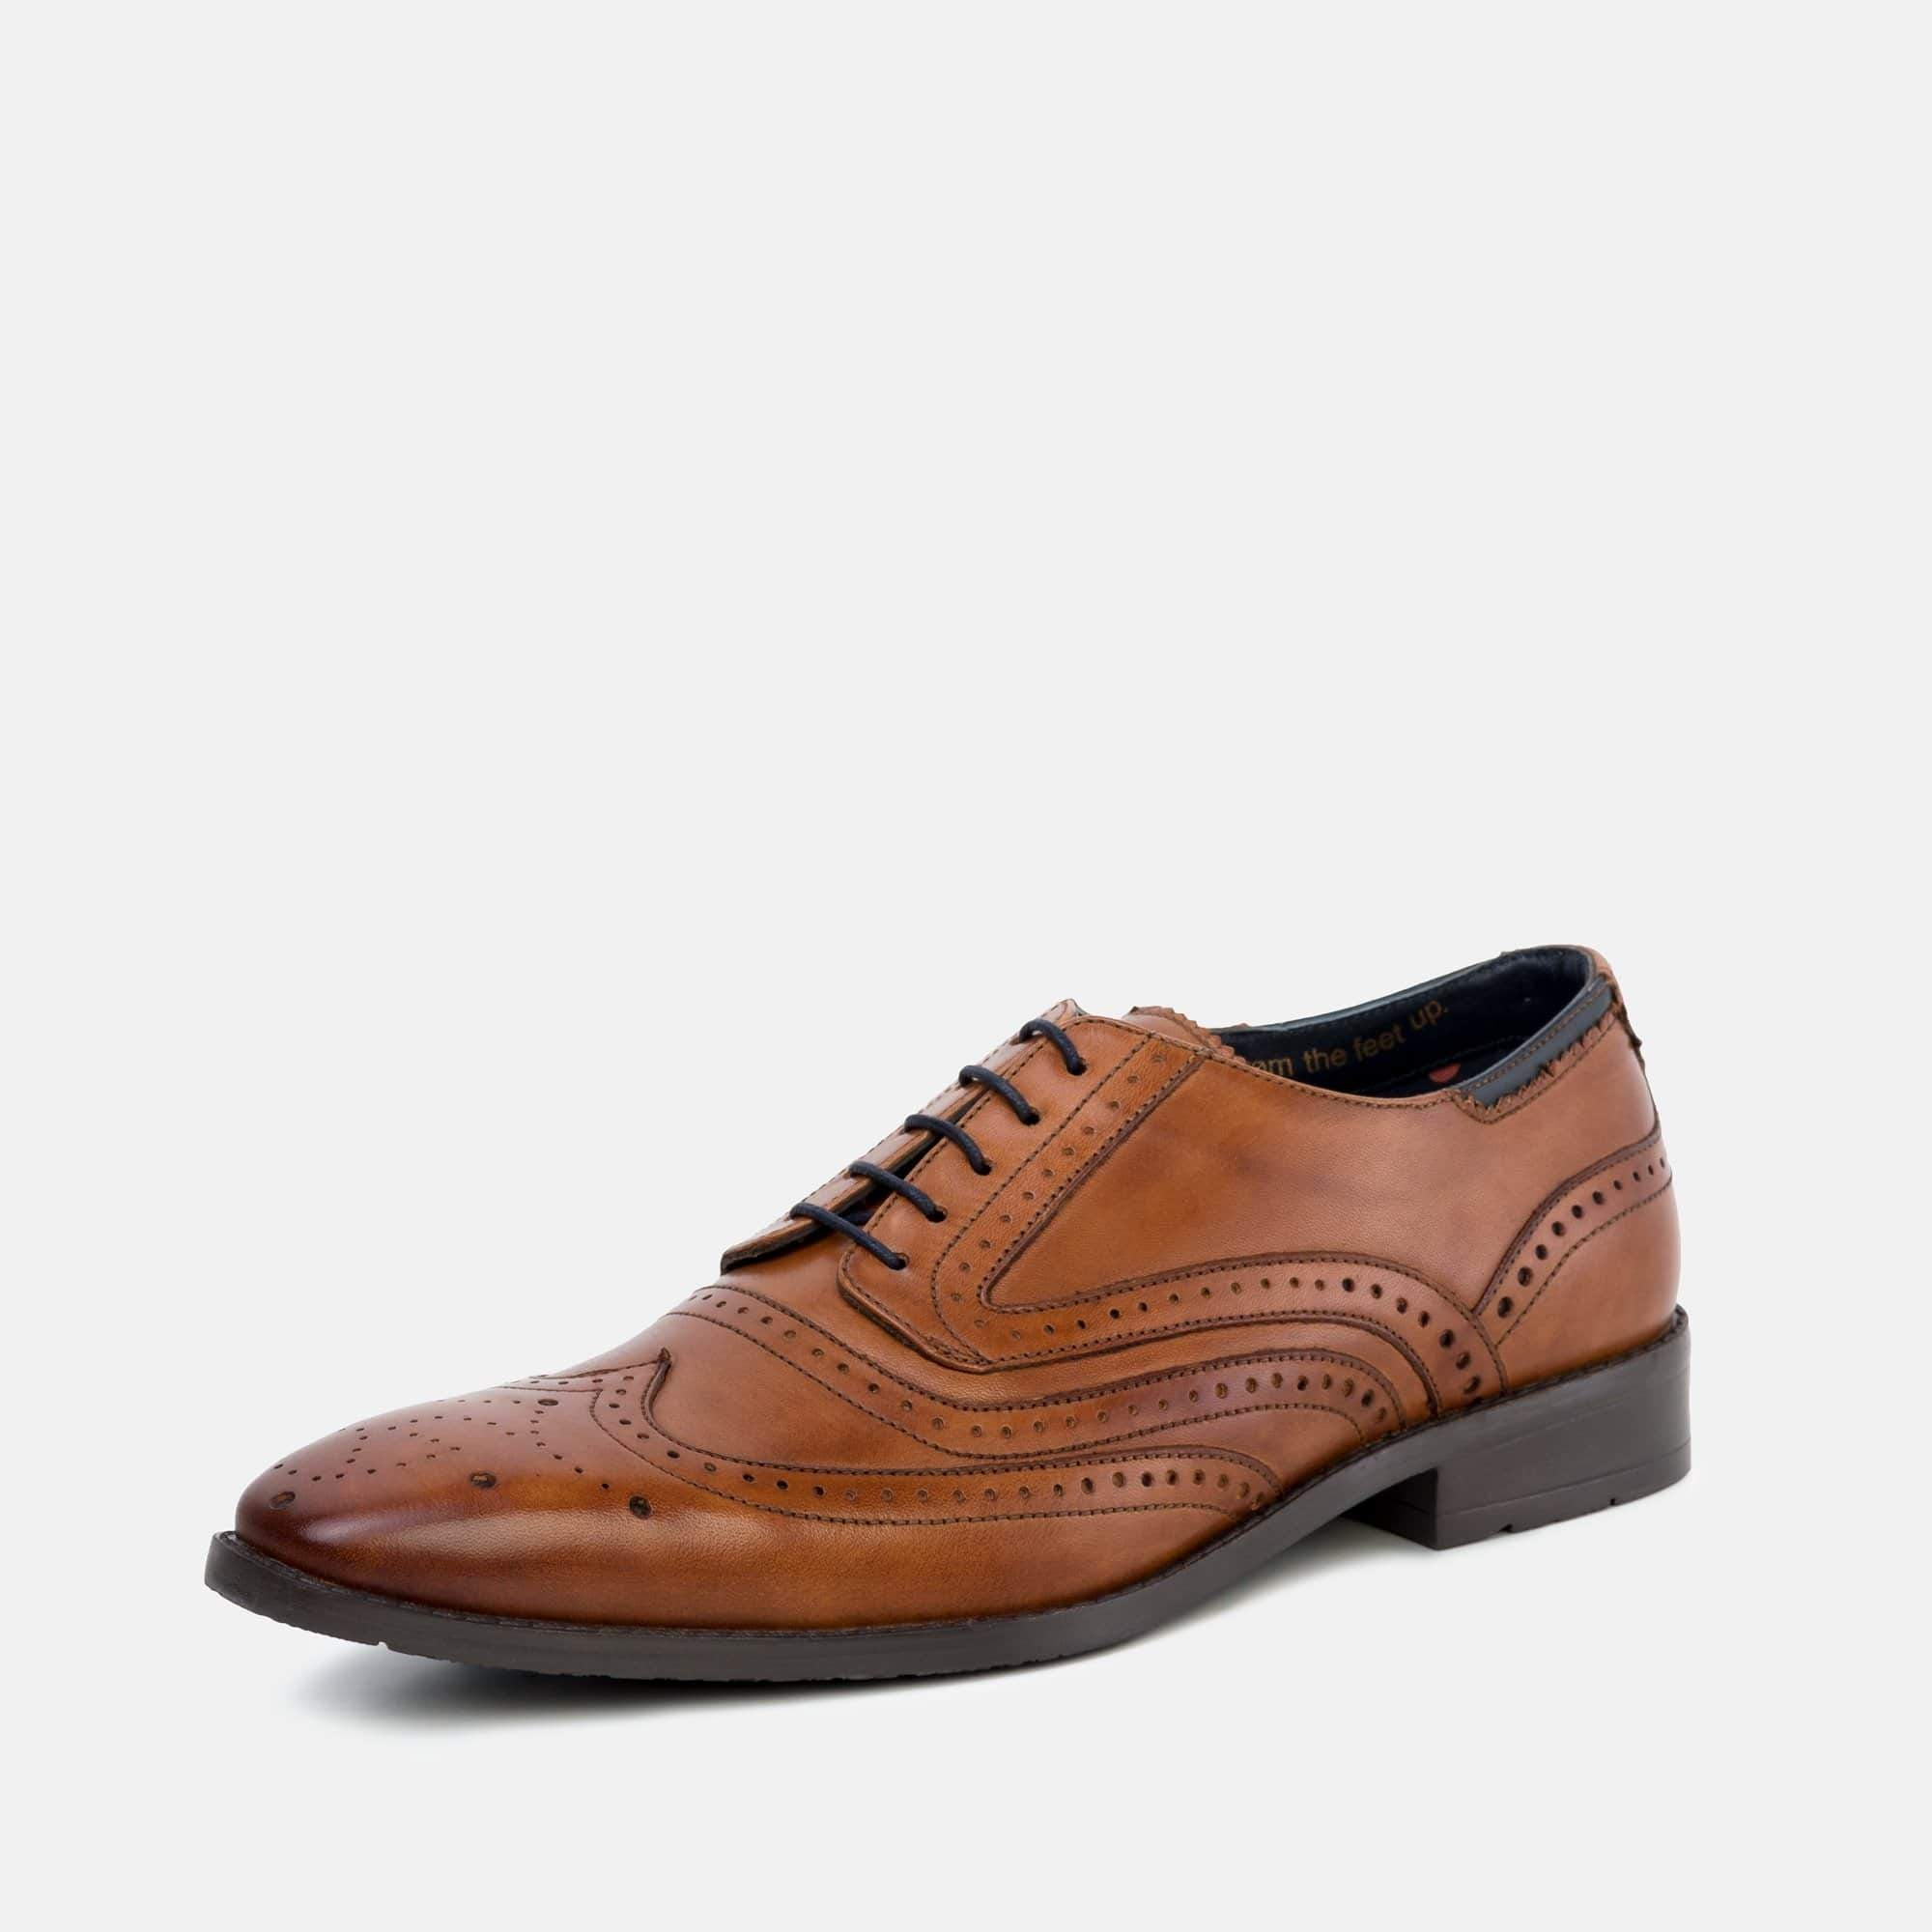 Goodwin Smith Footwear Lincoln Tan Classic Leather Derby Brogue Shoe